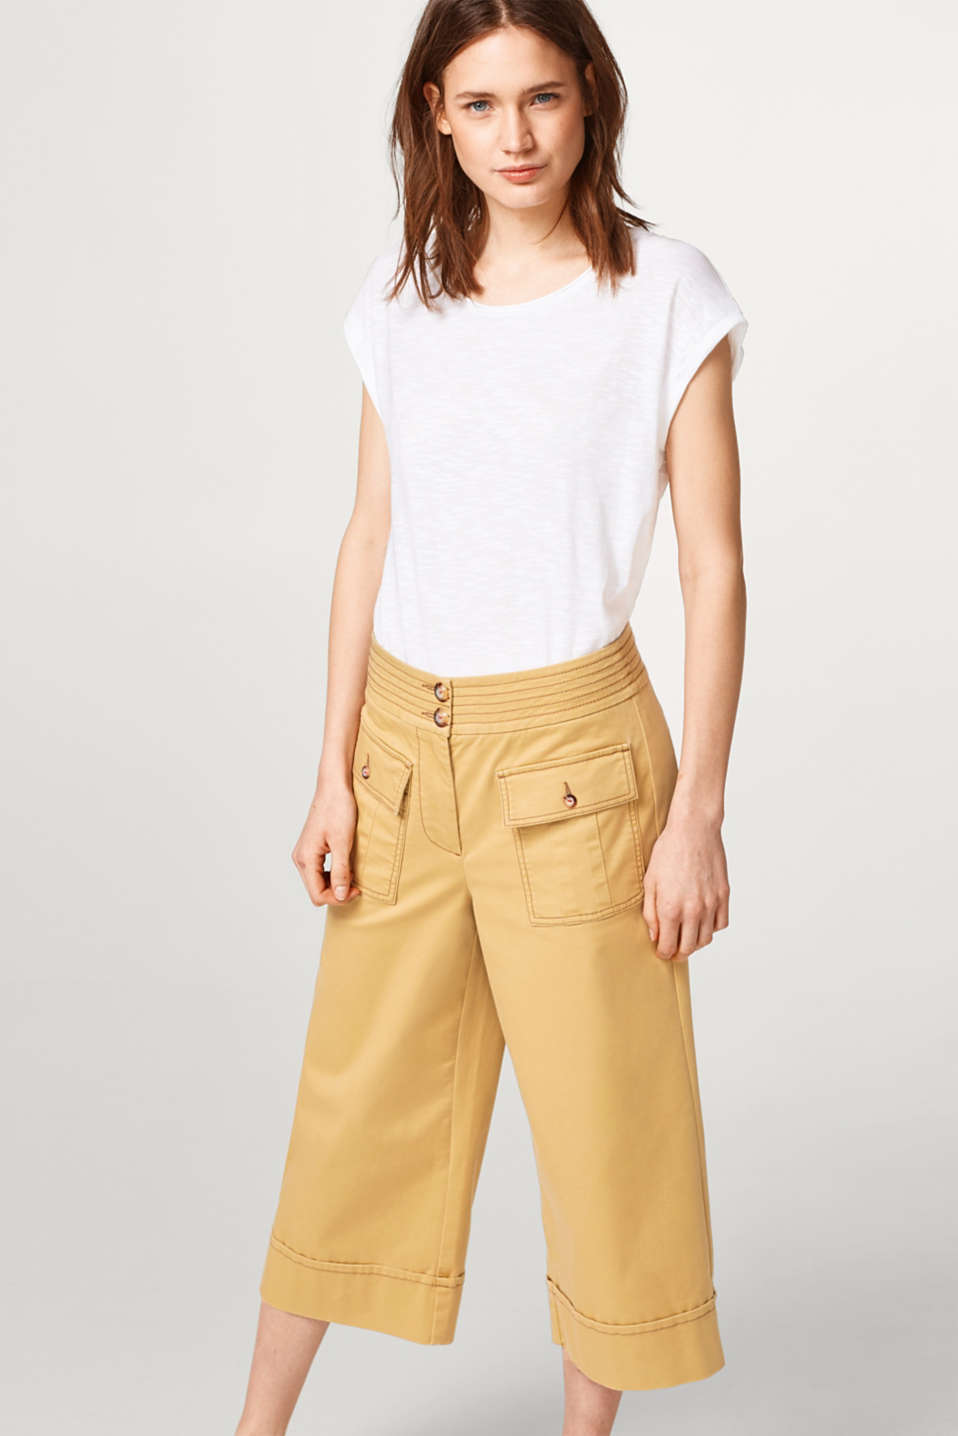 Esprit - Luftiges Slub-Shirt mit Organic Cotton